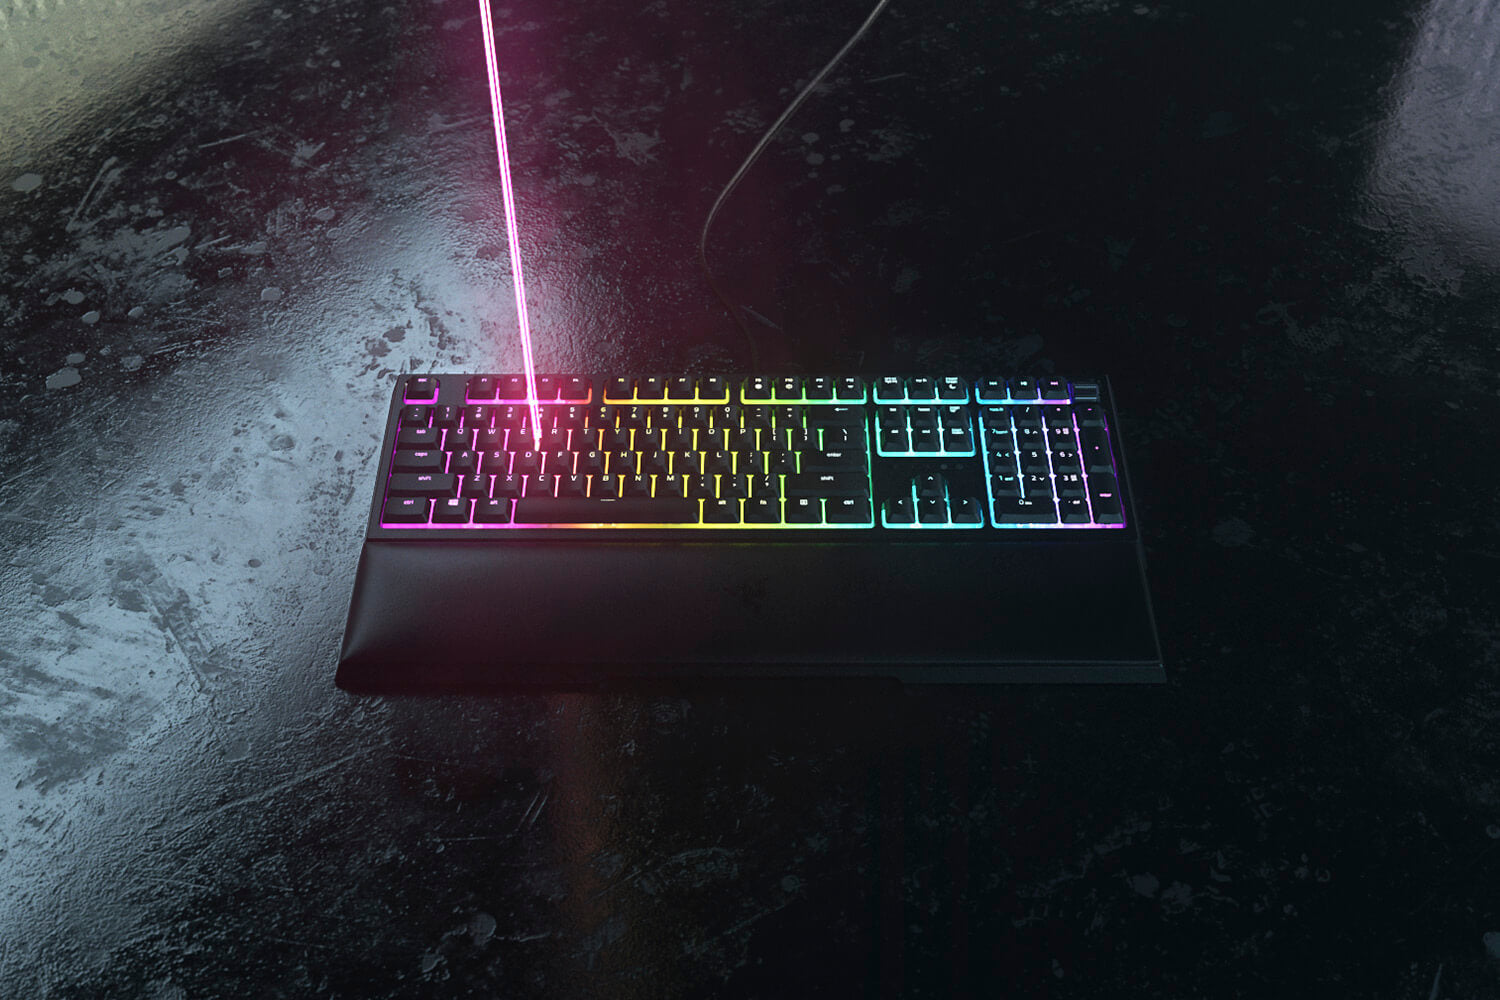 POWERED BY RAZER CHROMA RGB With 16.8 million colors and a suite of effects to choose from, the Razer Ornata V2 not only has deep customization, but offers greater immersion with dynamic lighting effects as you game on Chroma-integrated titles.